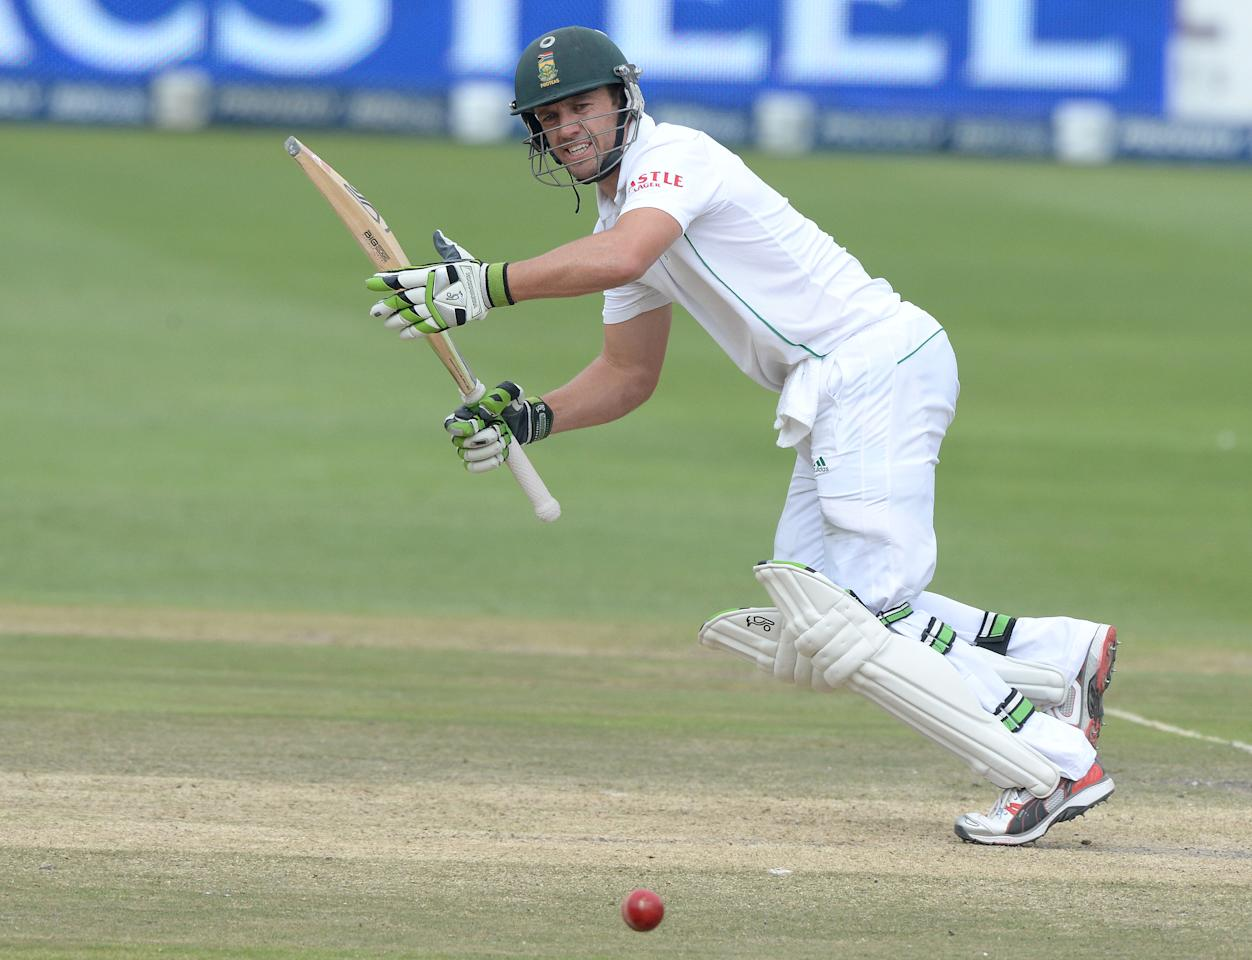 JOHANNESBURG, SOUTH AFRICA - DECEMBER 22:  AB de Villiers of South Africa sets off for a run during day 5 of the 1st Test match between South Africa and India at Bidvest Wanderers Stadium on December 22, 2013 in Johannesburg, South Africa. (Photo by Duif du Toit/Gallo Images)